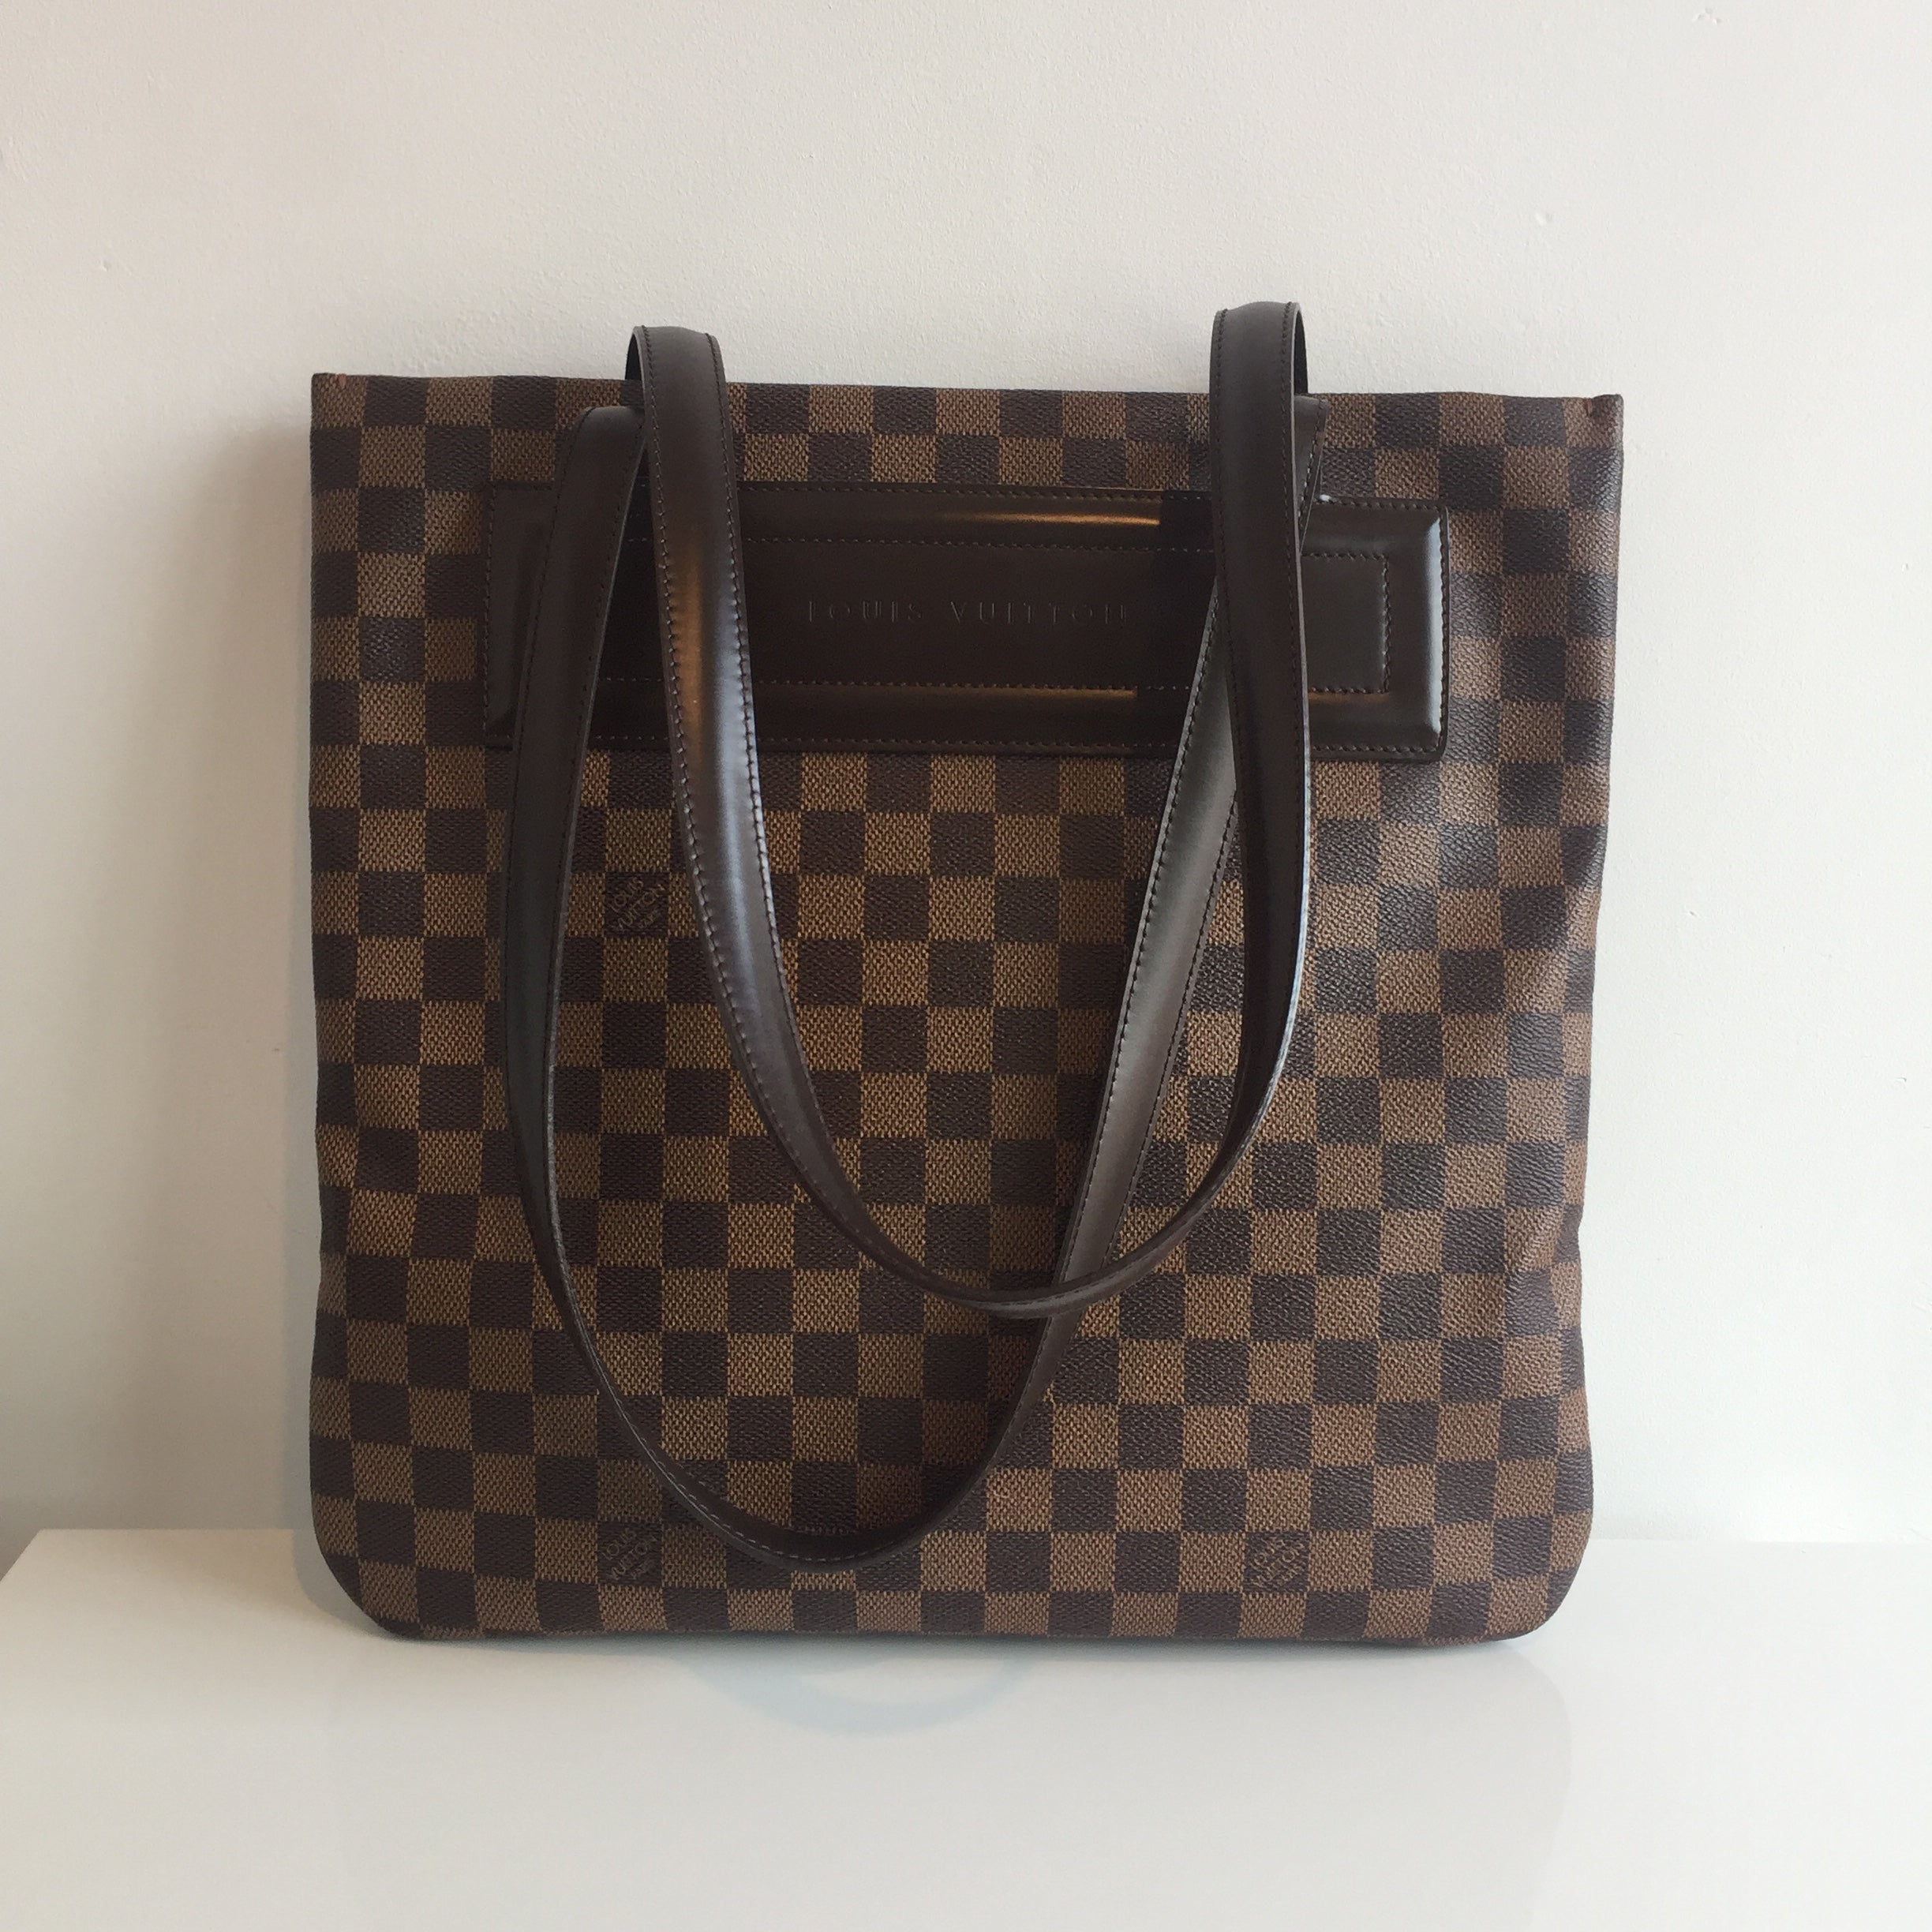 Authentic LOUIS VUITTON Clifton Tote